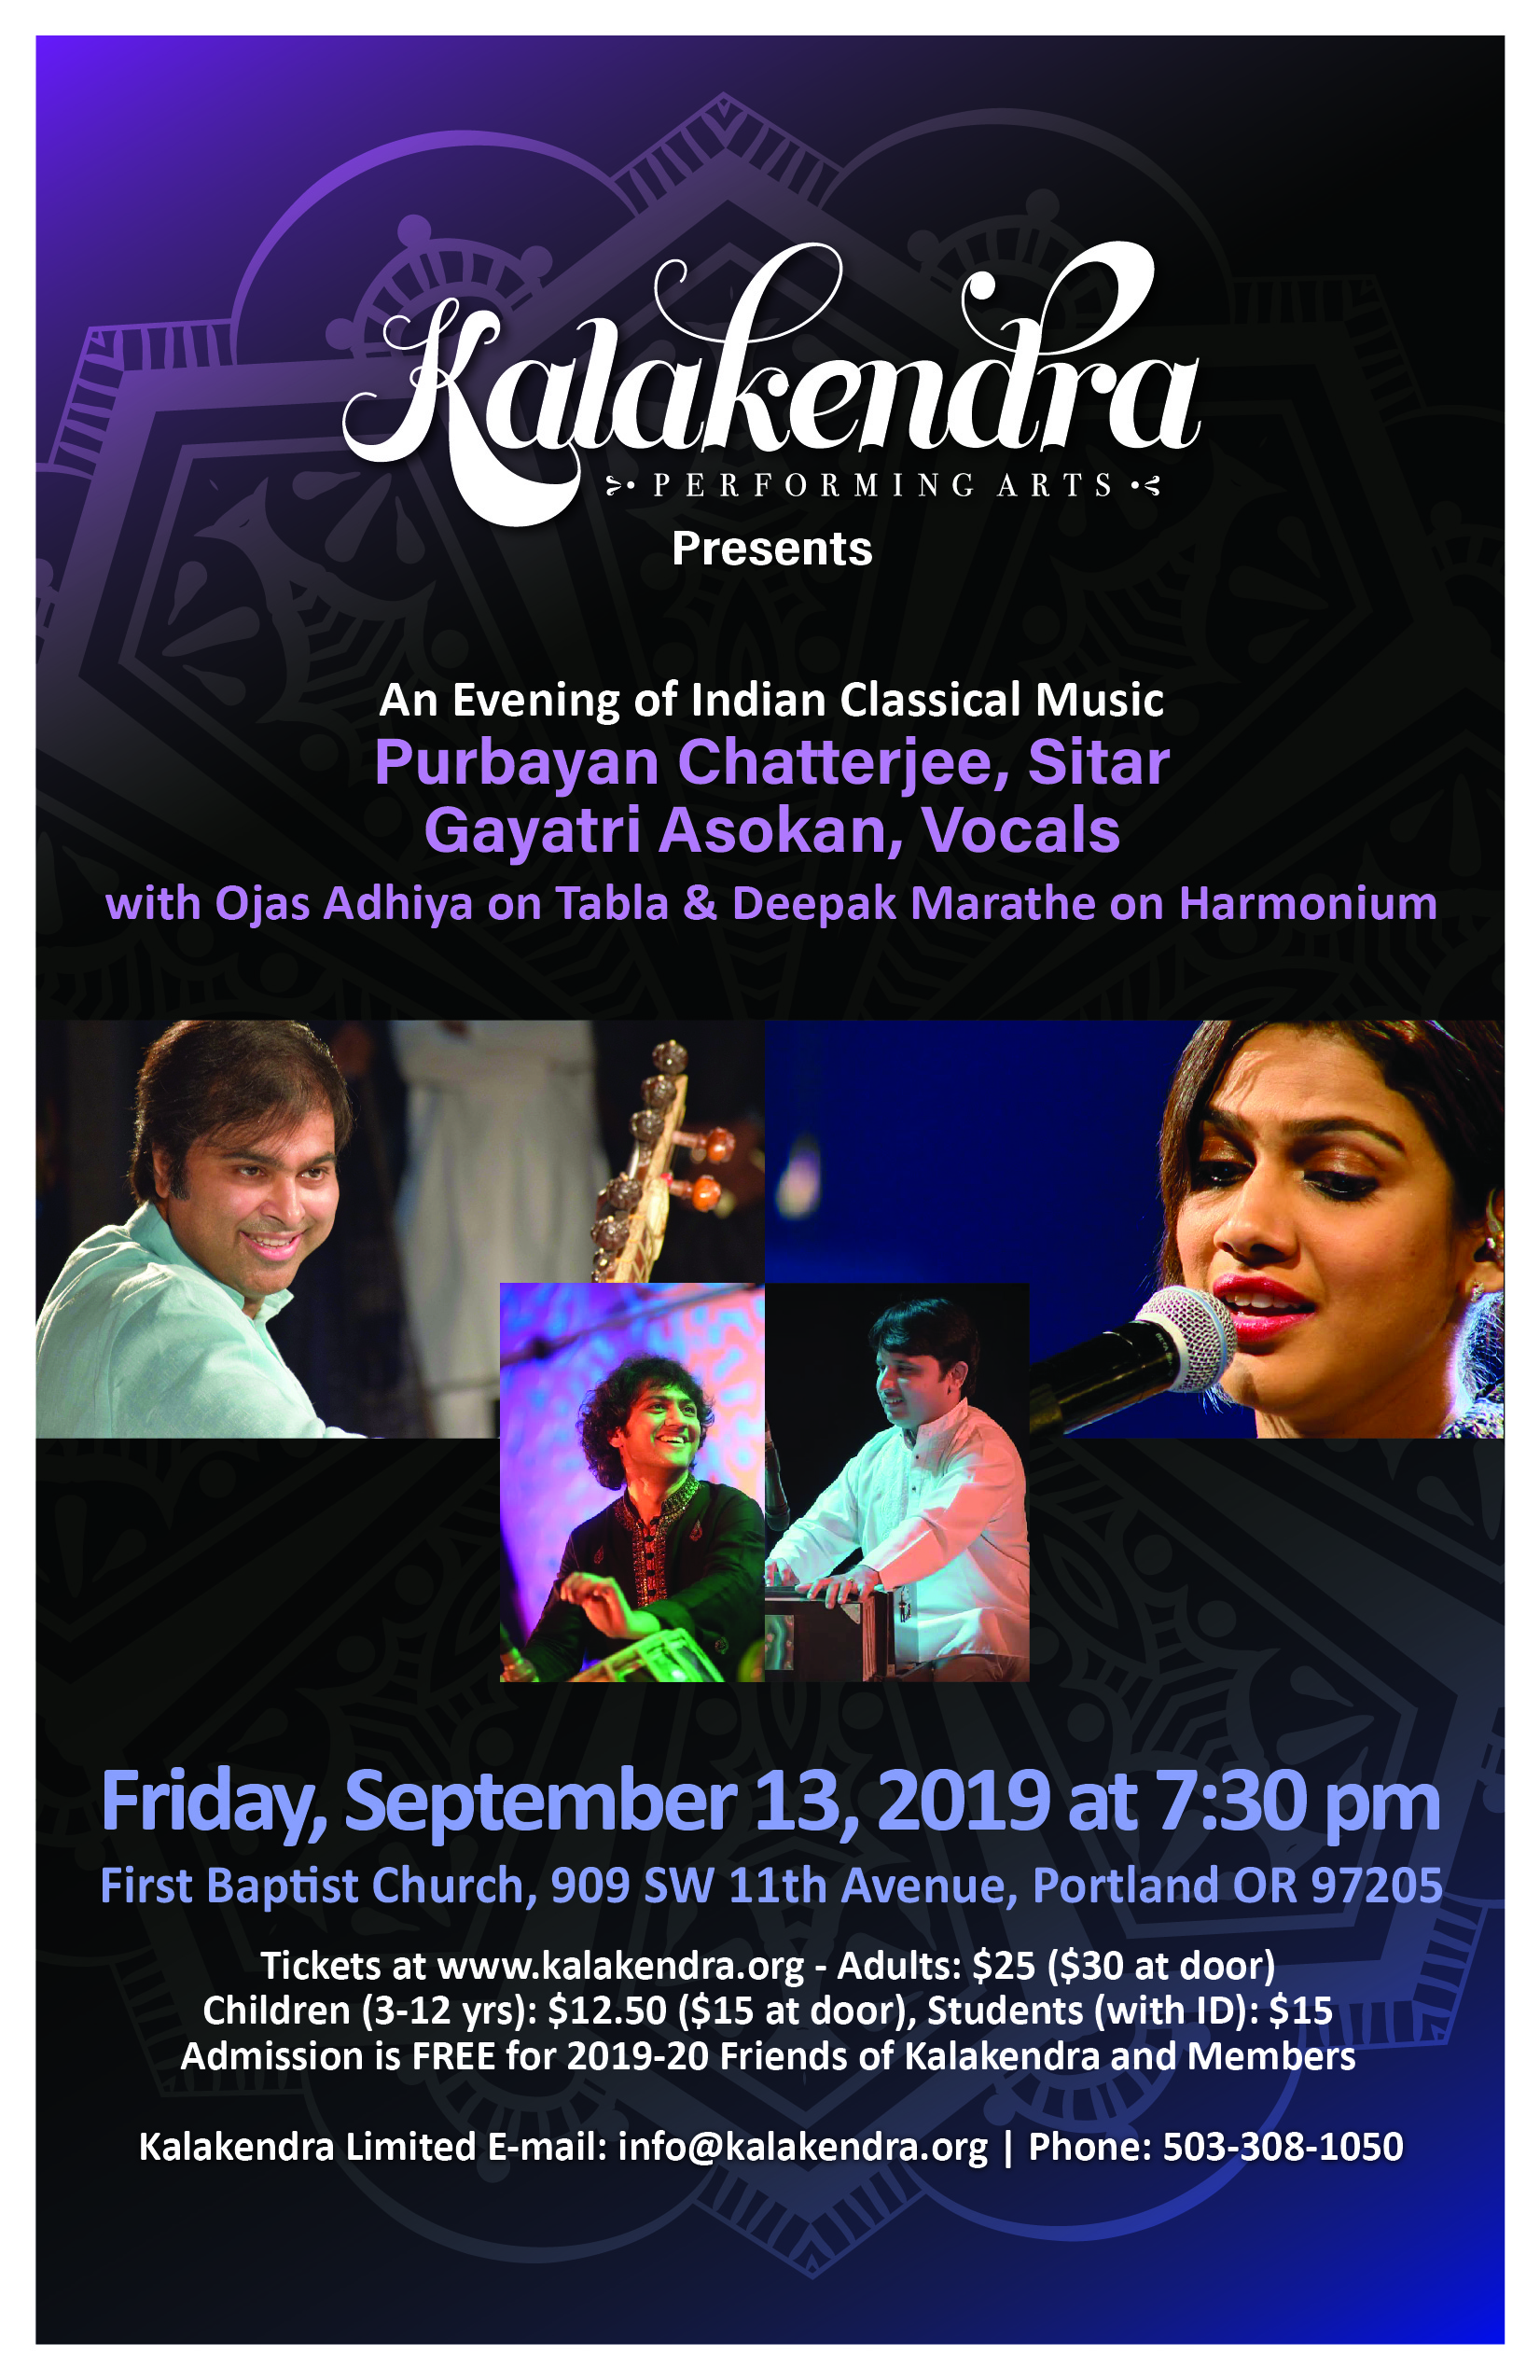 Kalakendra | Society for the Performing Arts of India in